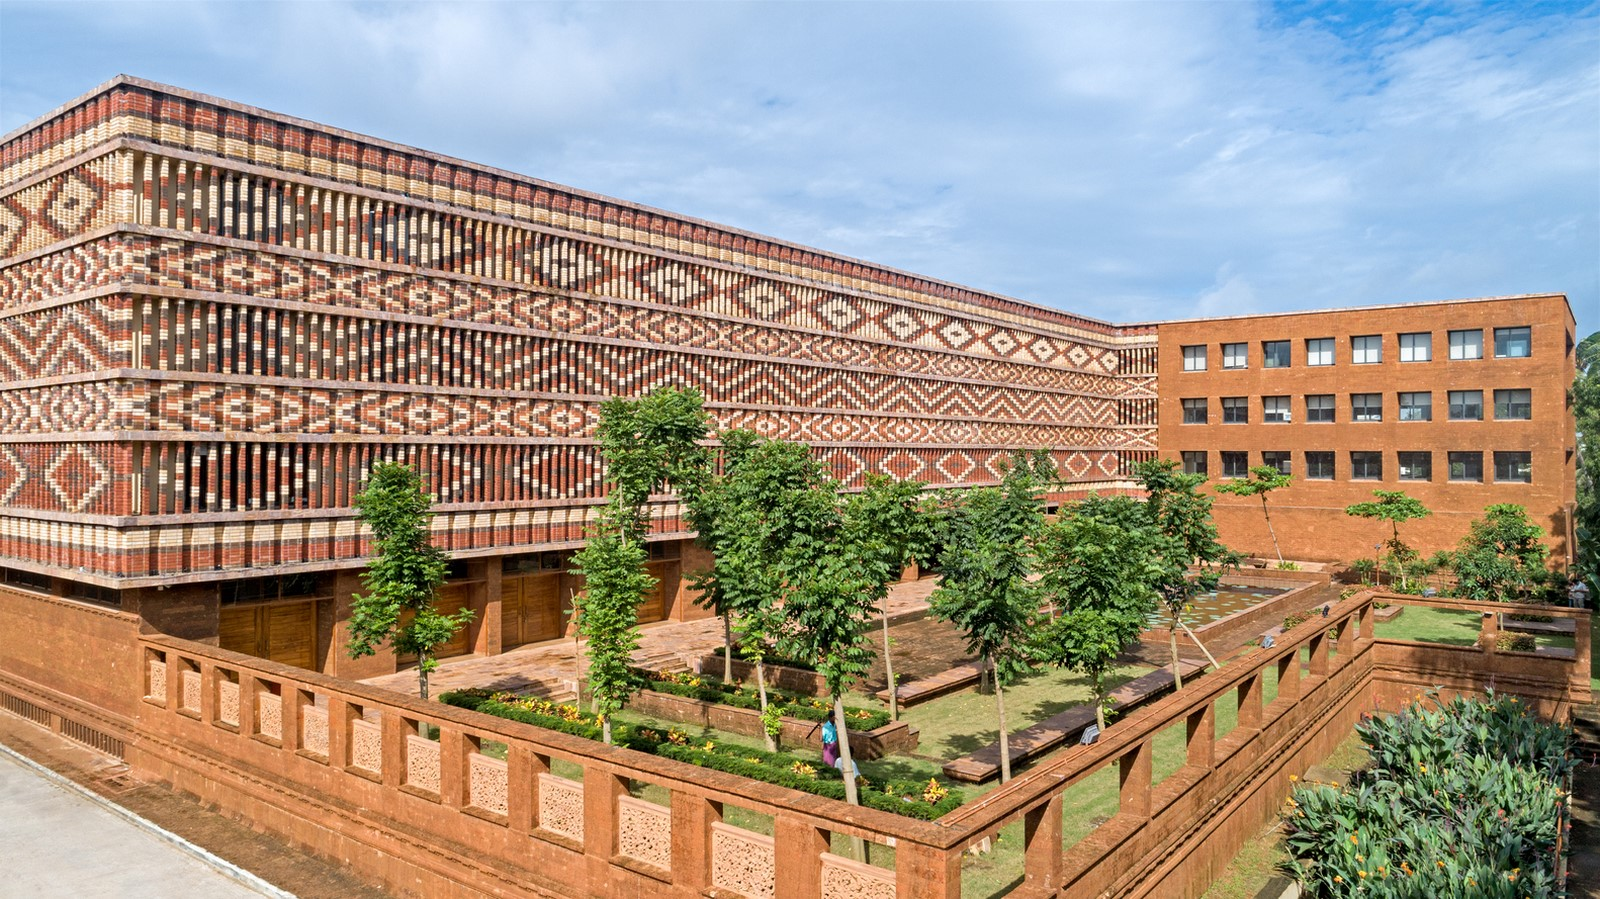 10 Buildings with fascinating facades in India - Sheet2